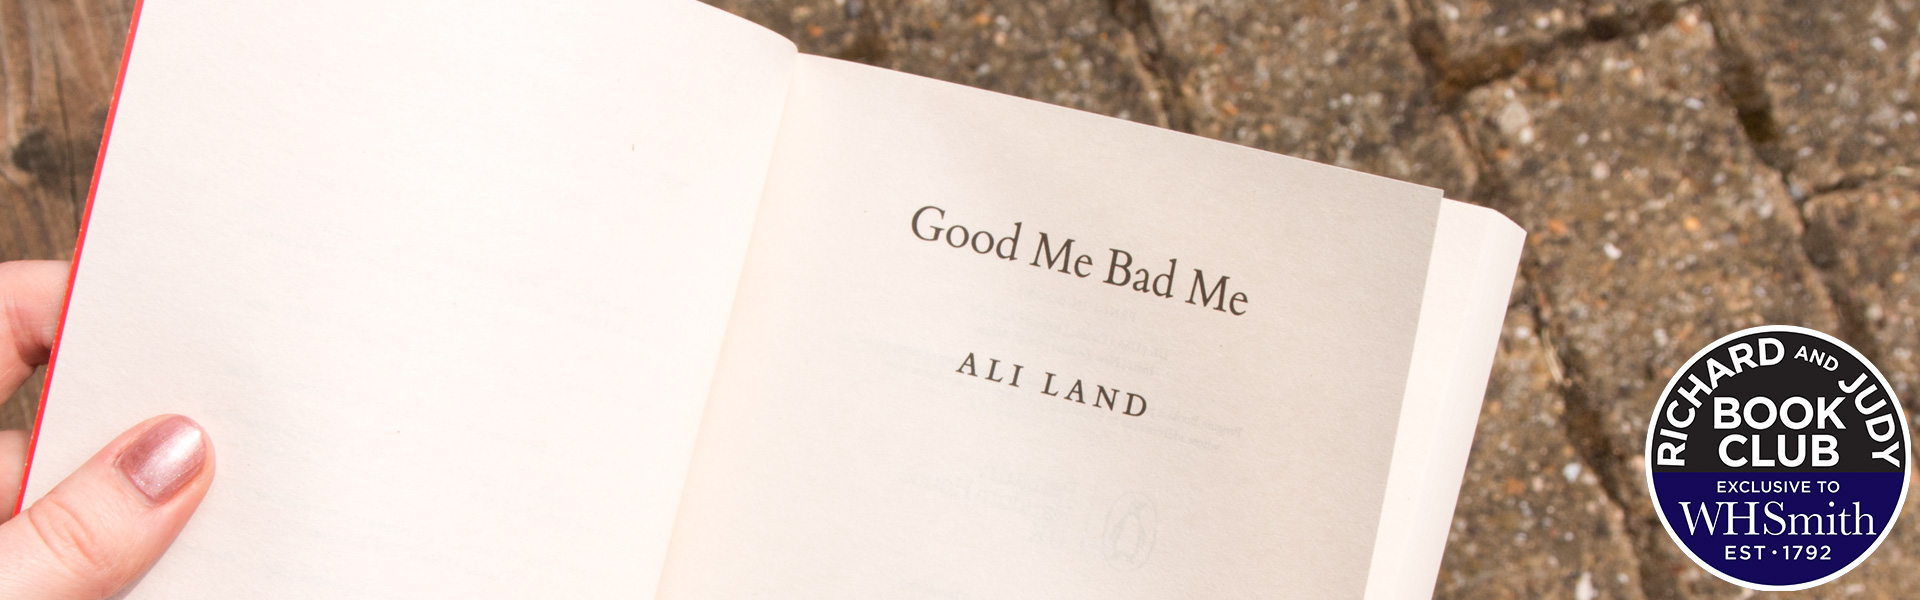 Read an Extract from Good Me Bad Me by Ali Land